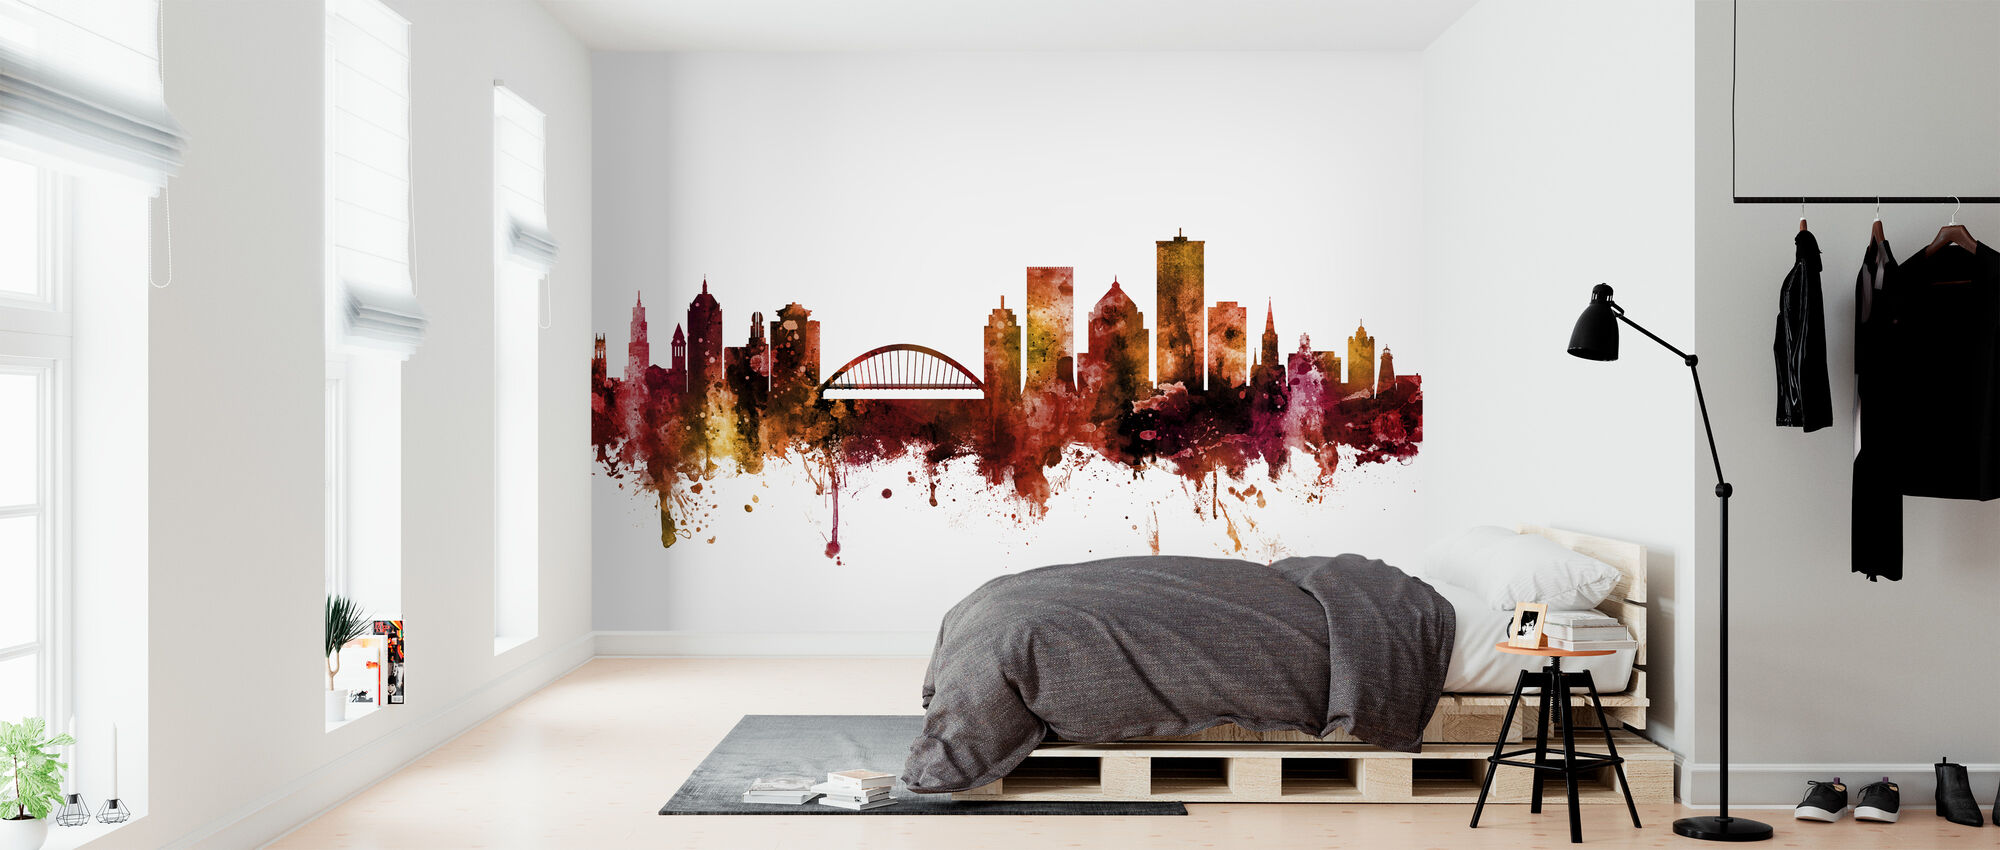 Rochester New York Skyline - Behang - Slaapkamer